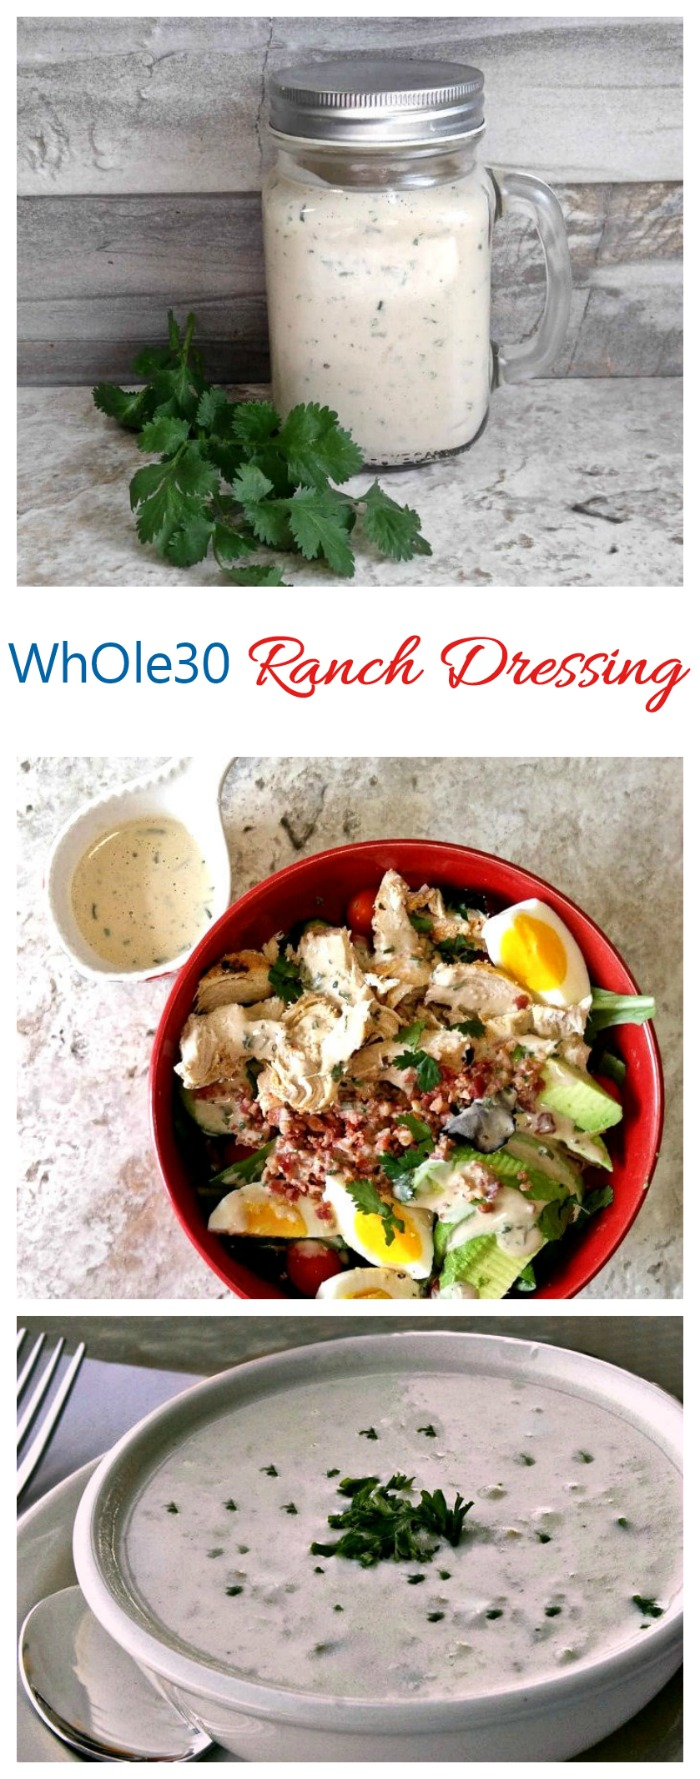 Whole30 Ranch Dressing - (Gluten - Free Paleo) Fresh Herbs, Creamy